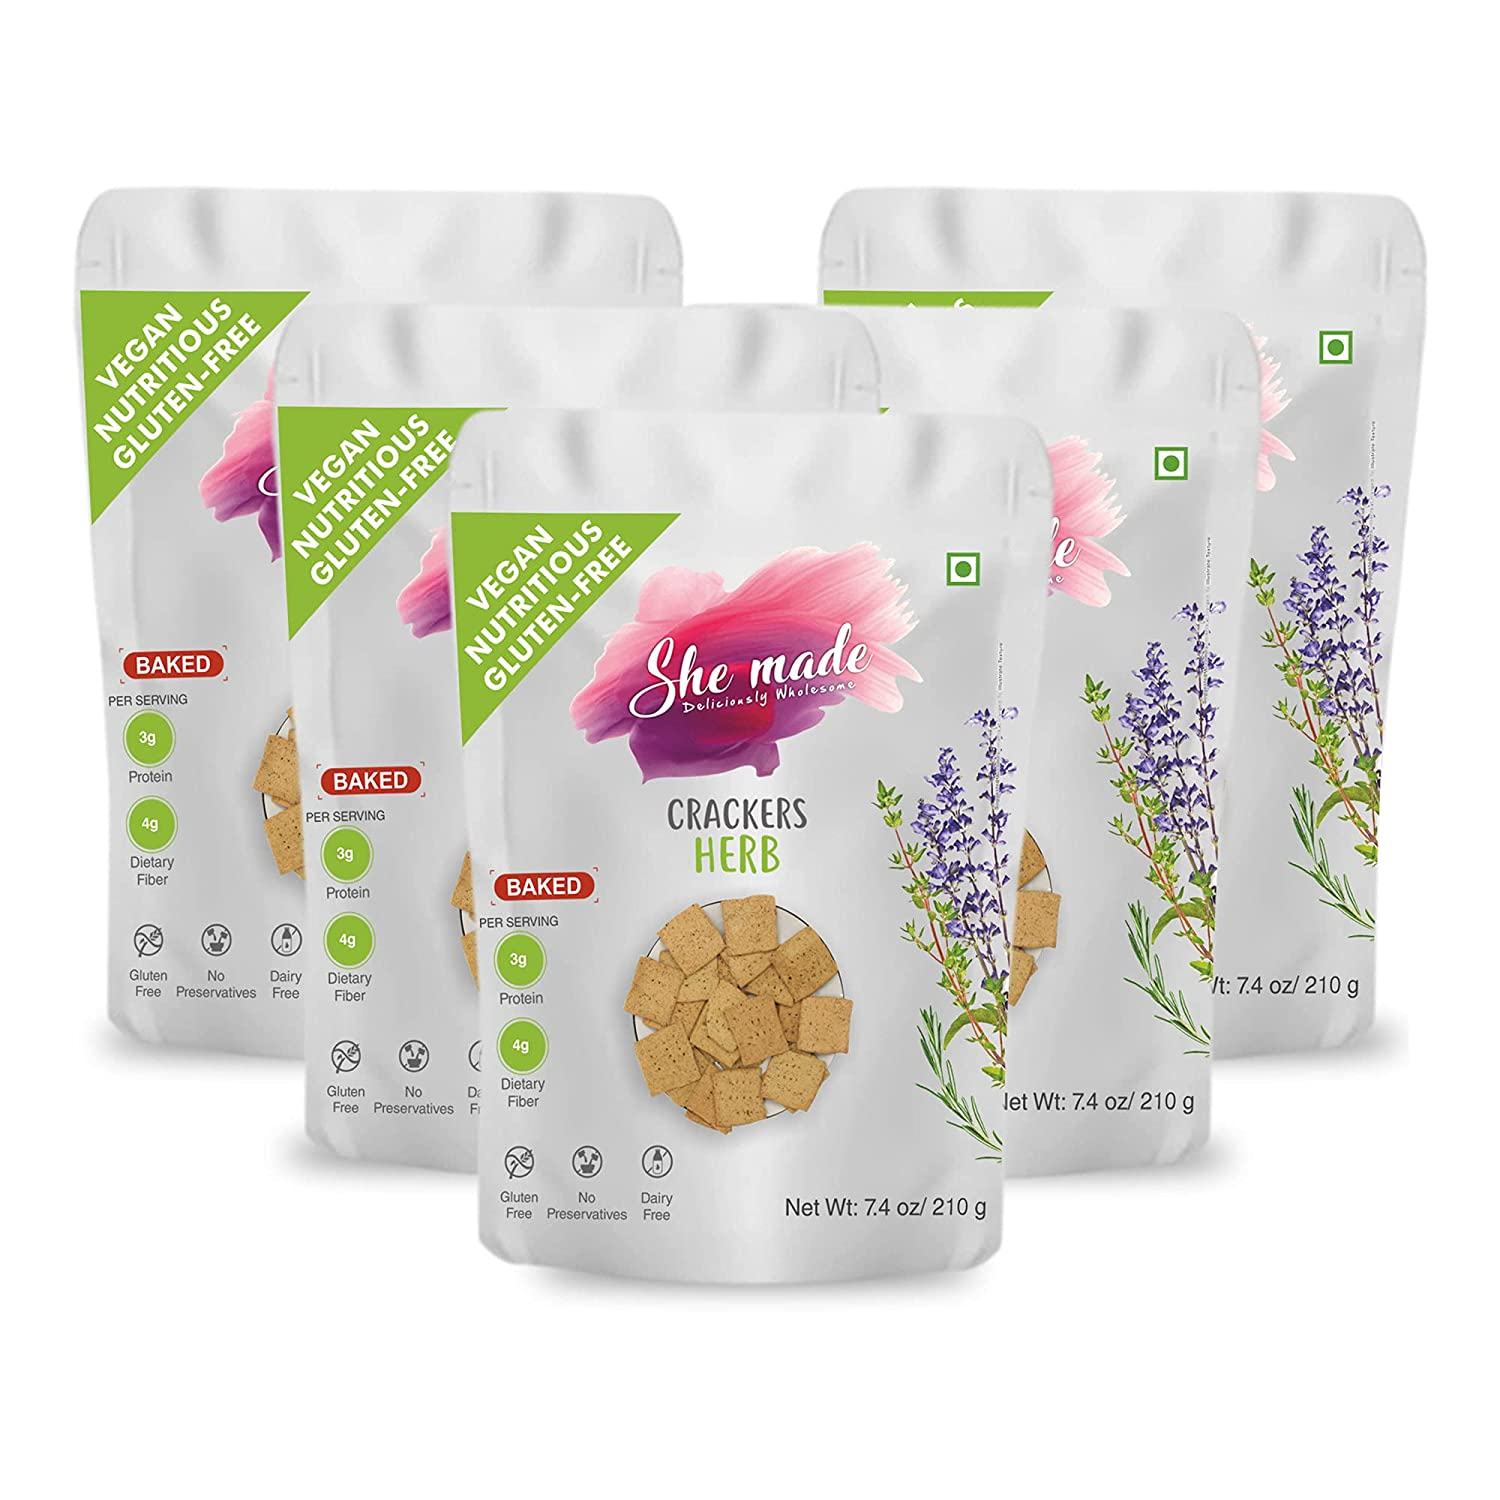 She Made Foods Grain Free, Paleo, Vegan Crackers, Mixed Herb Flavored - Low Carb, Gluten Free, Almond Flour Crackers - Healthy Snack, Tasty Gourmet Food, Pack of 5 (7.4 ounces each)